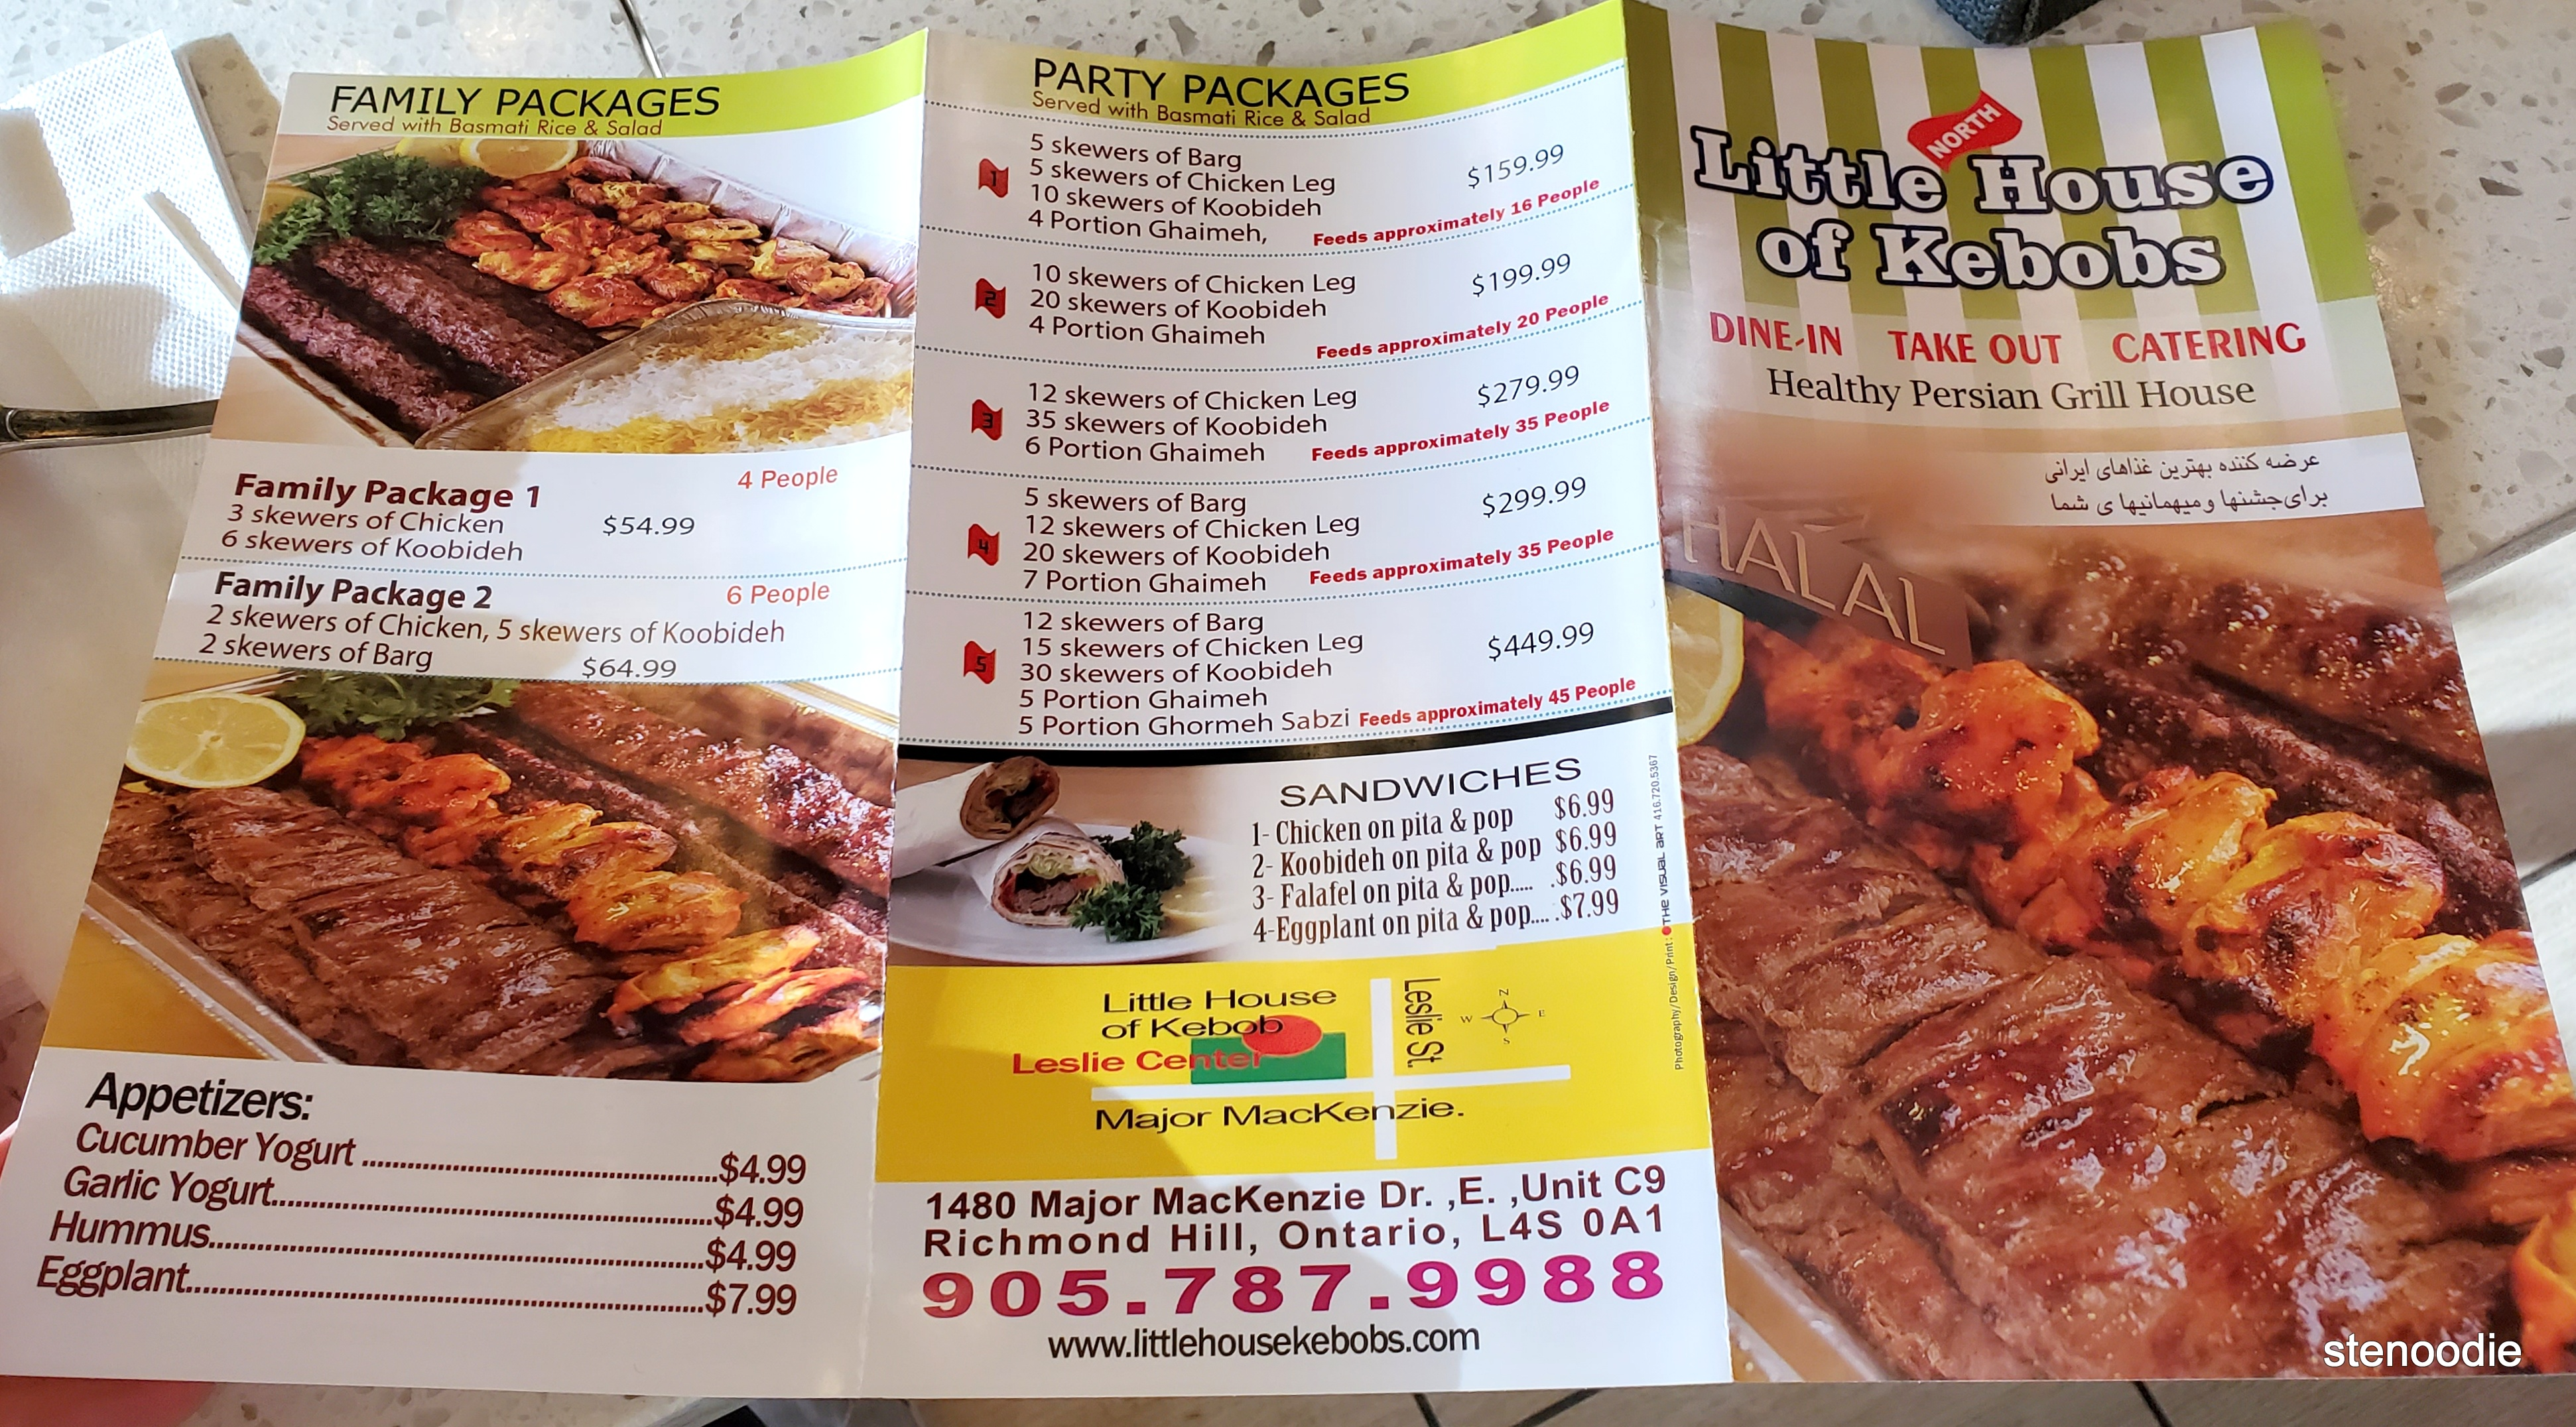 The Little House of Kebobs menu and prices